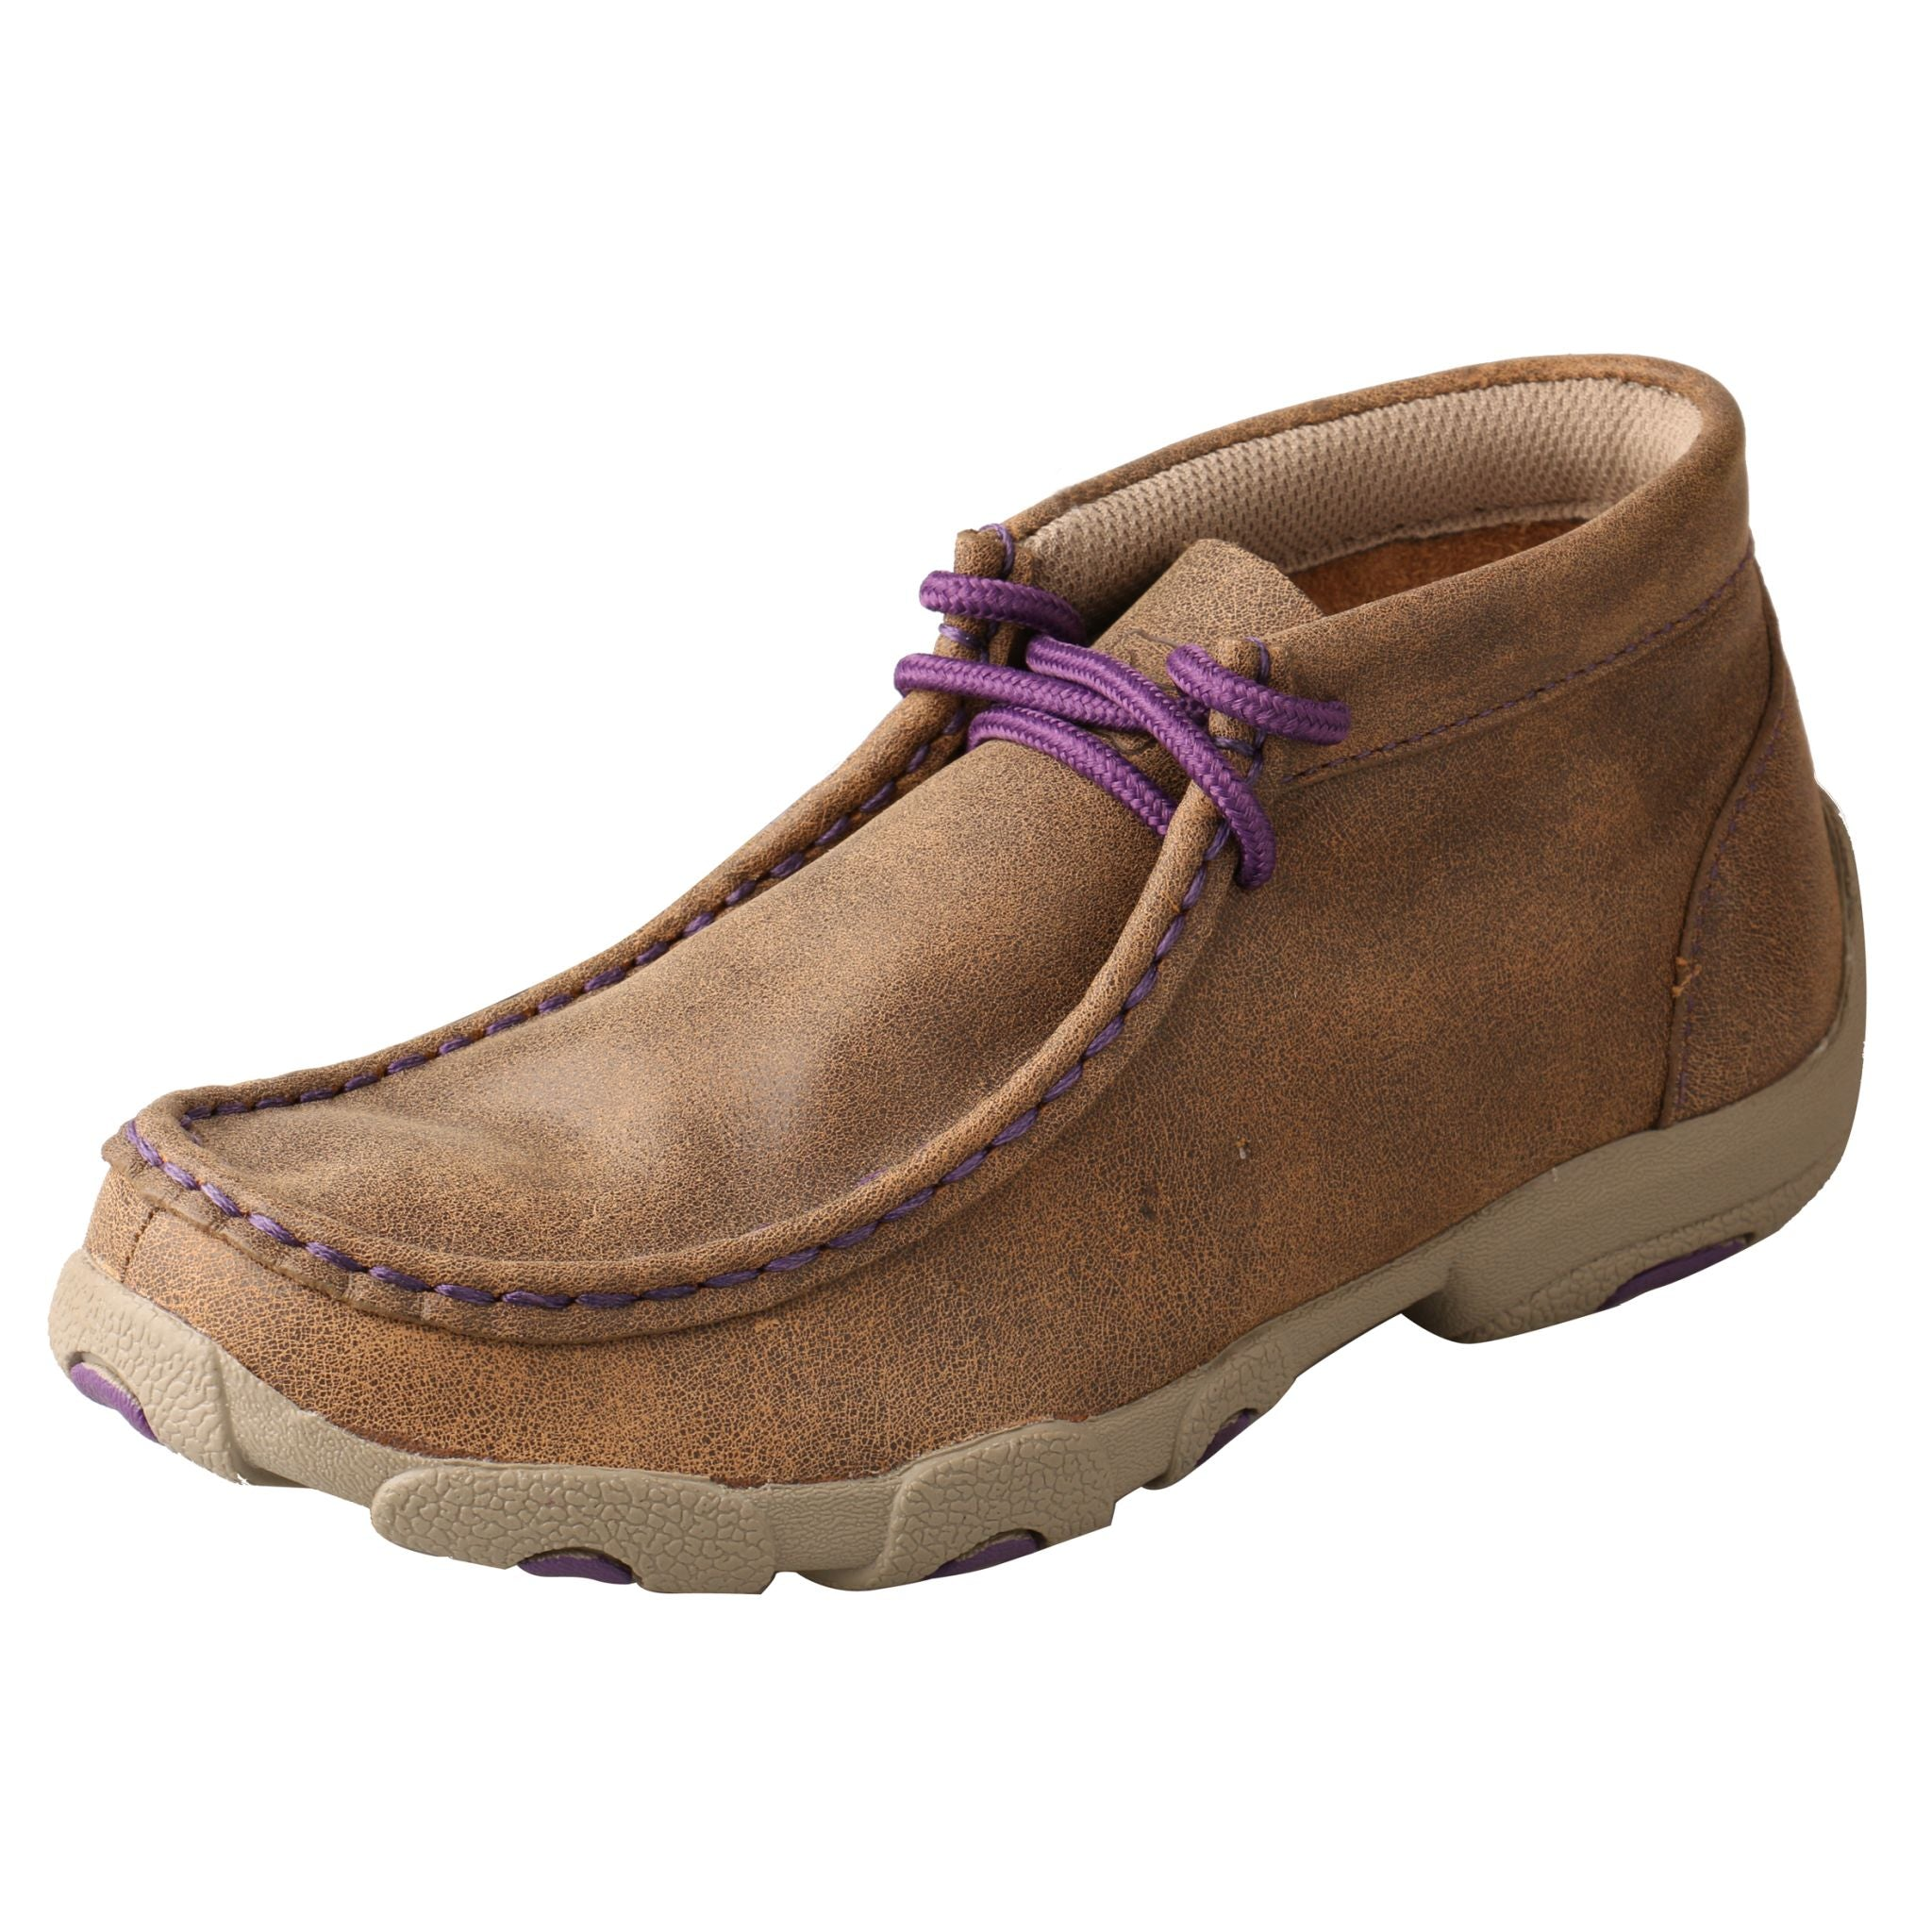 'Twisted X' Kids' Driving Moccasin - Bomber / Purple